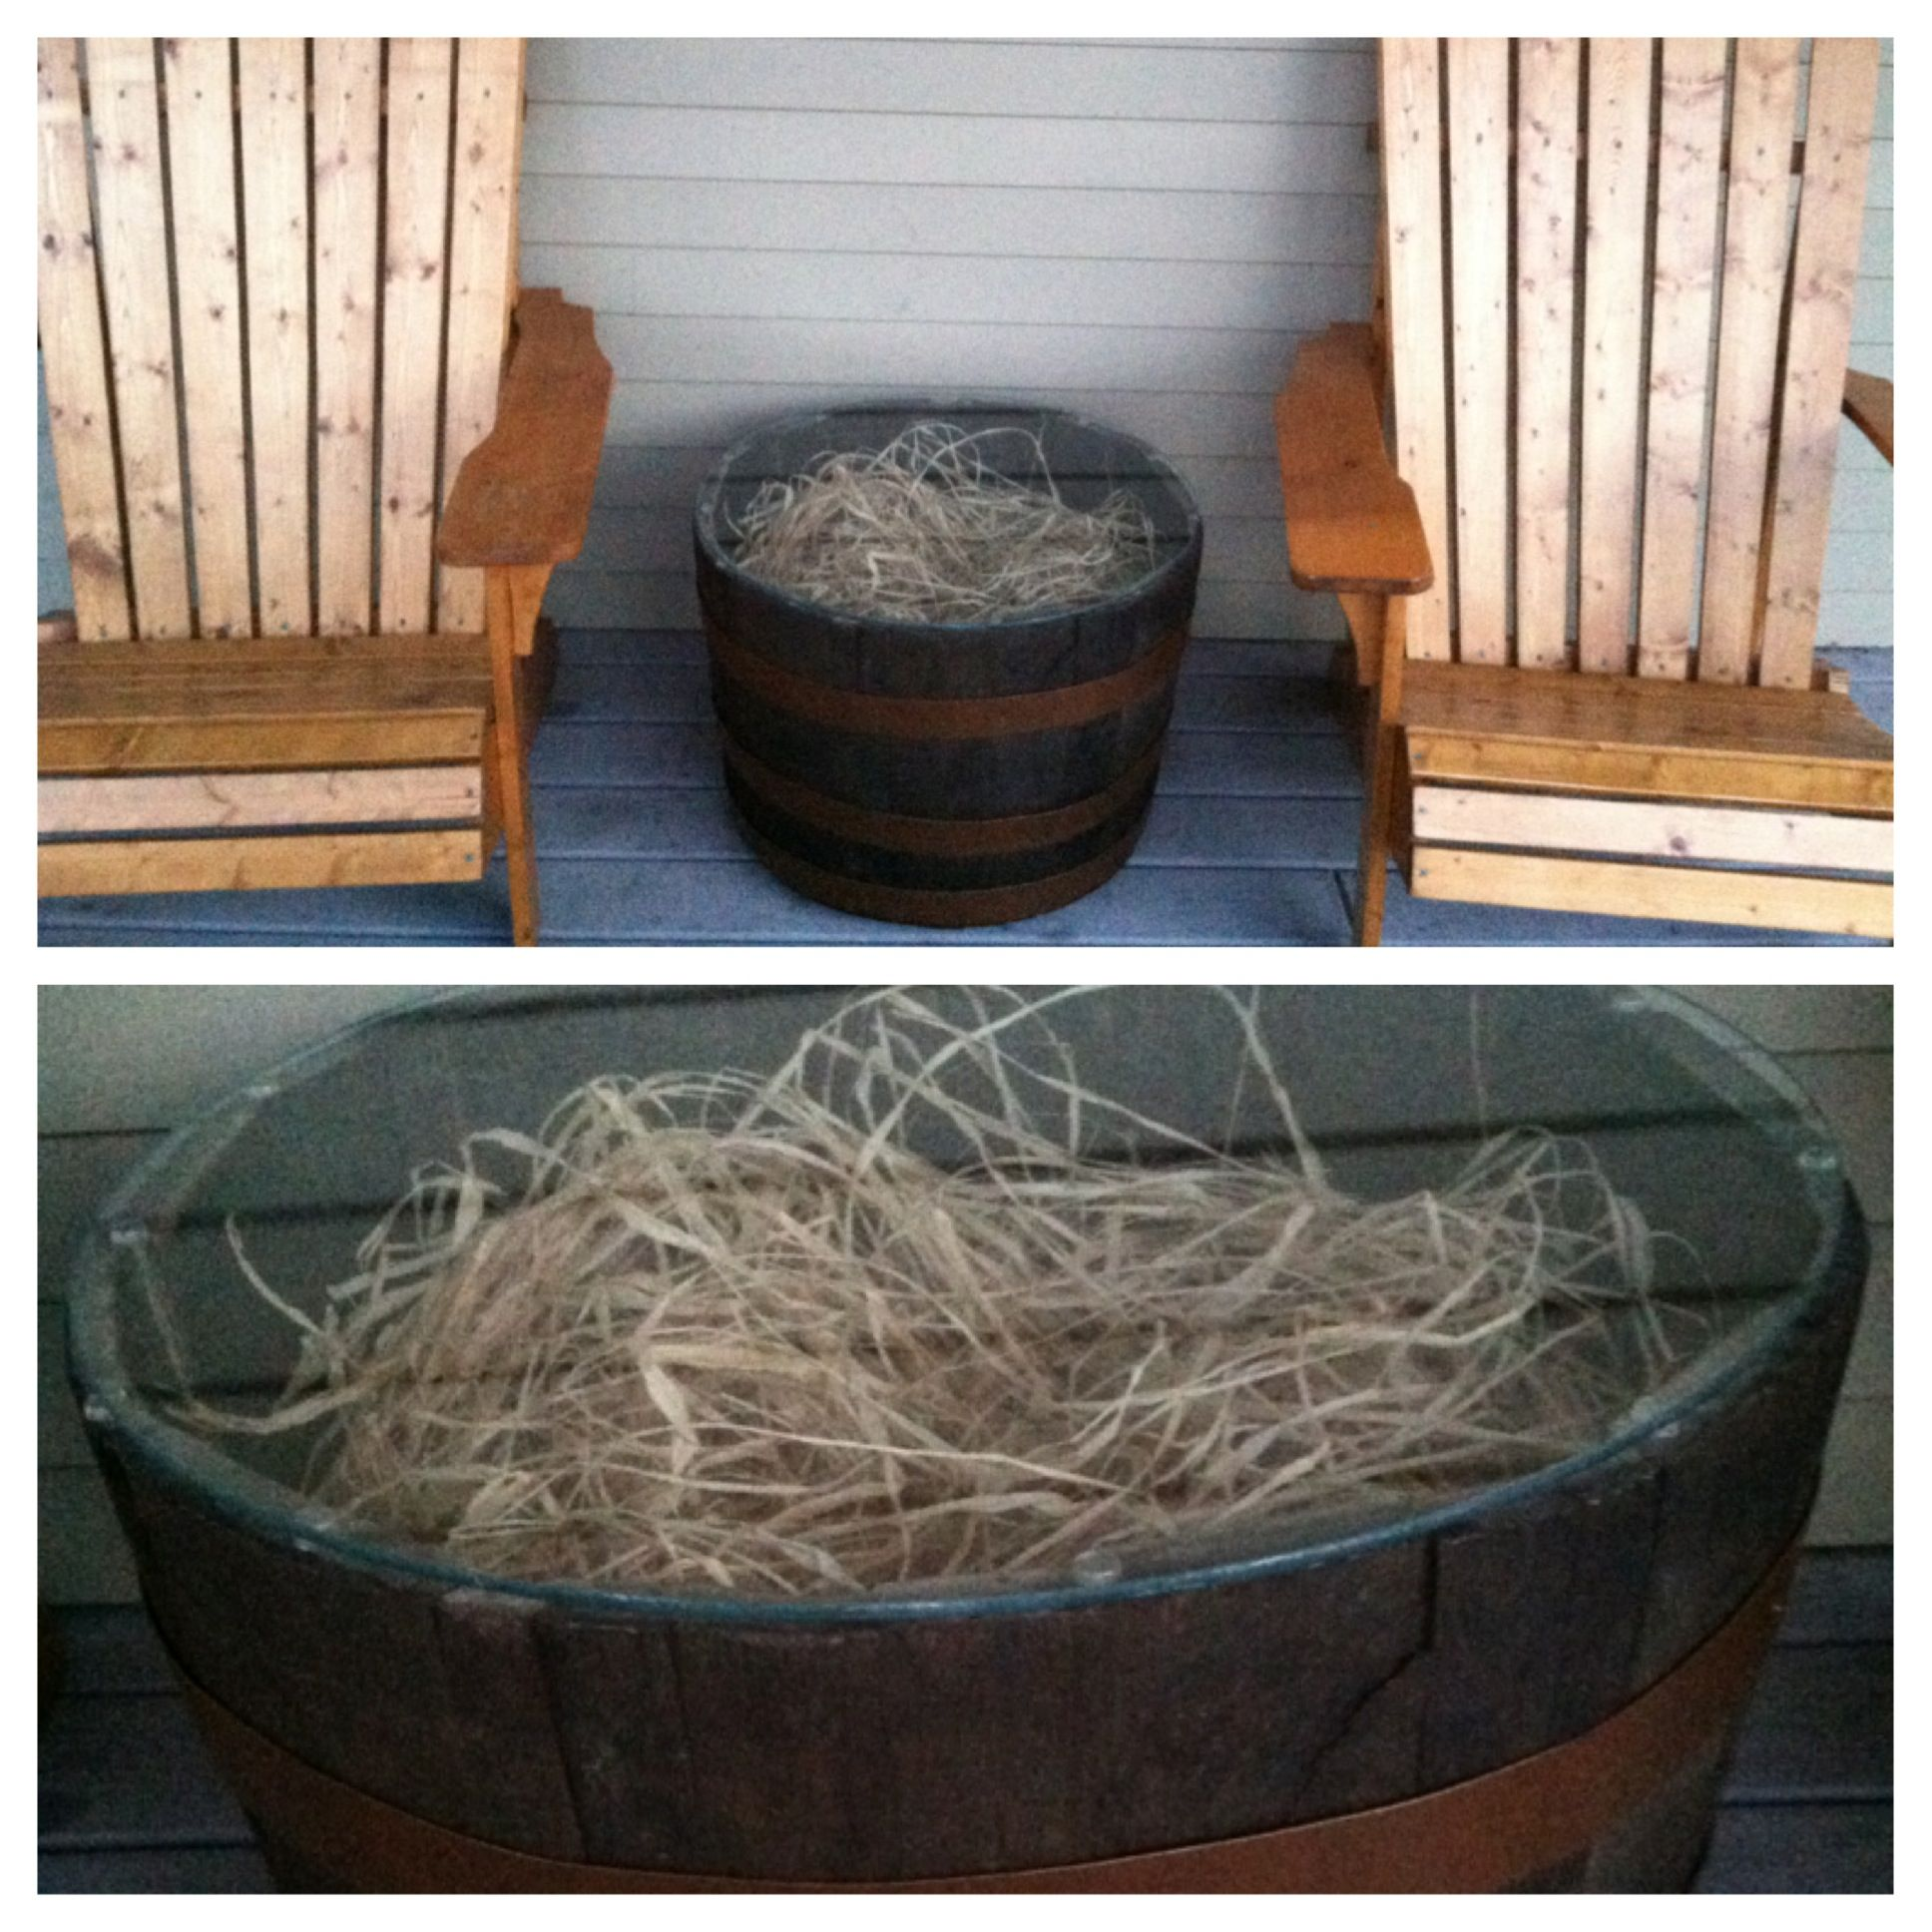 Whiskey barrel planter as end table $30 planter from Home Depot